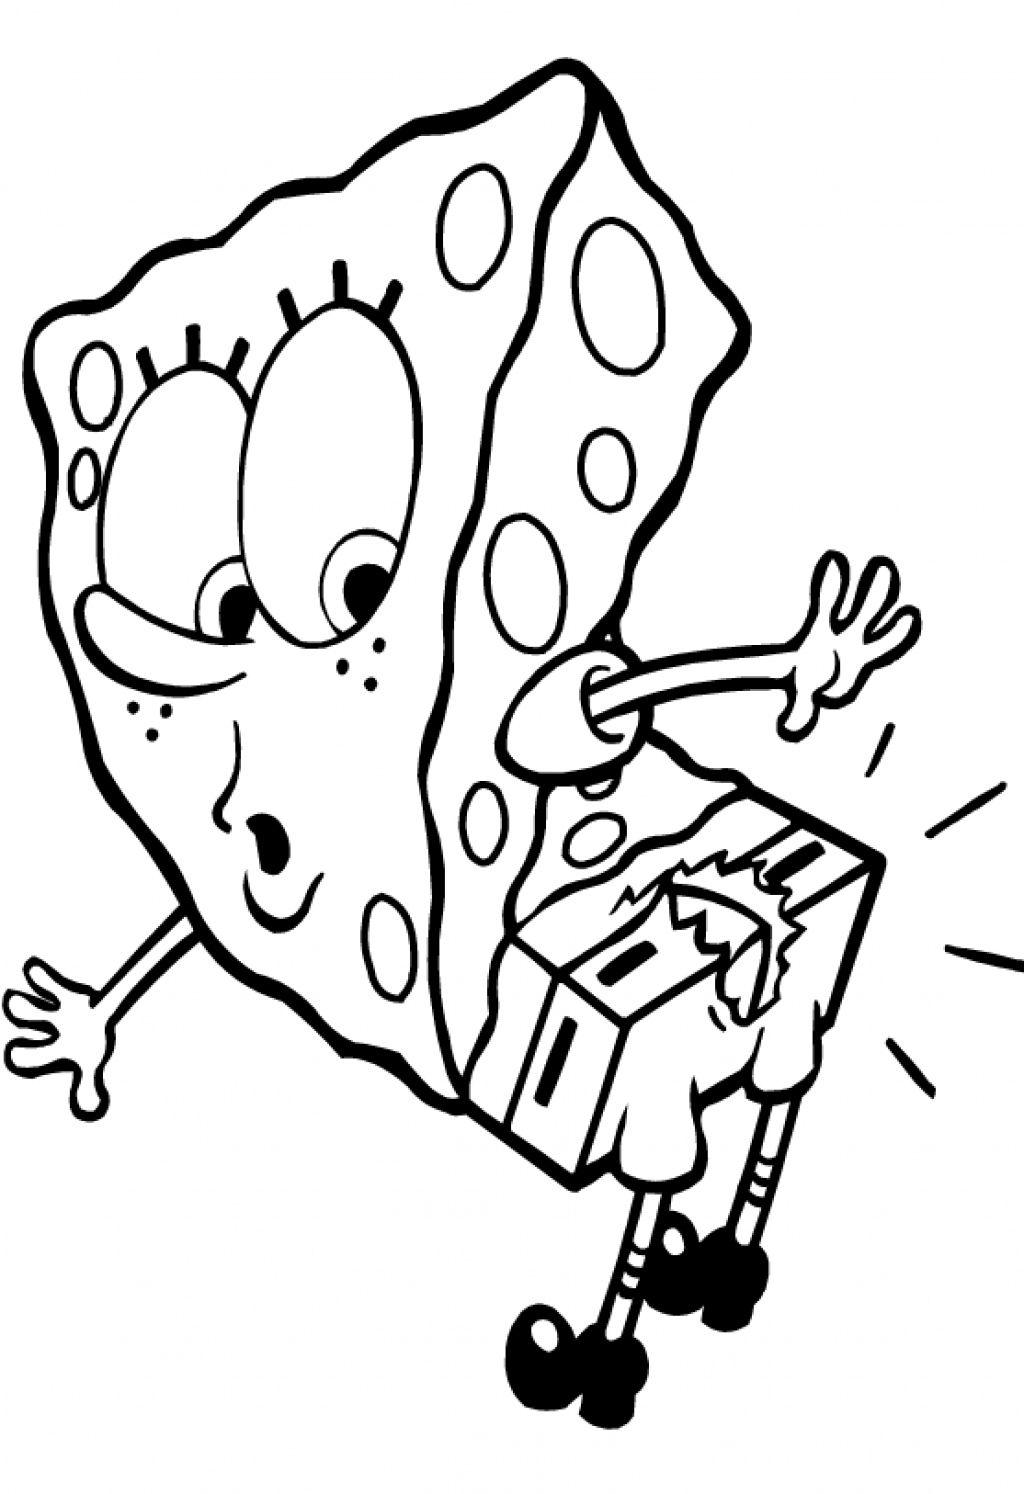 Spongebob and gary coloring page only coloring pages for Spongebob free coloring pages